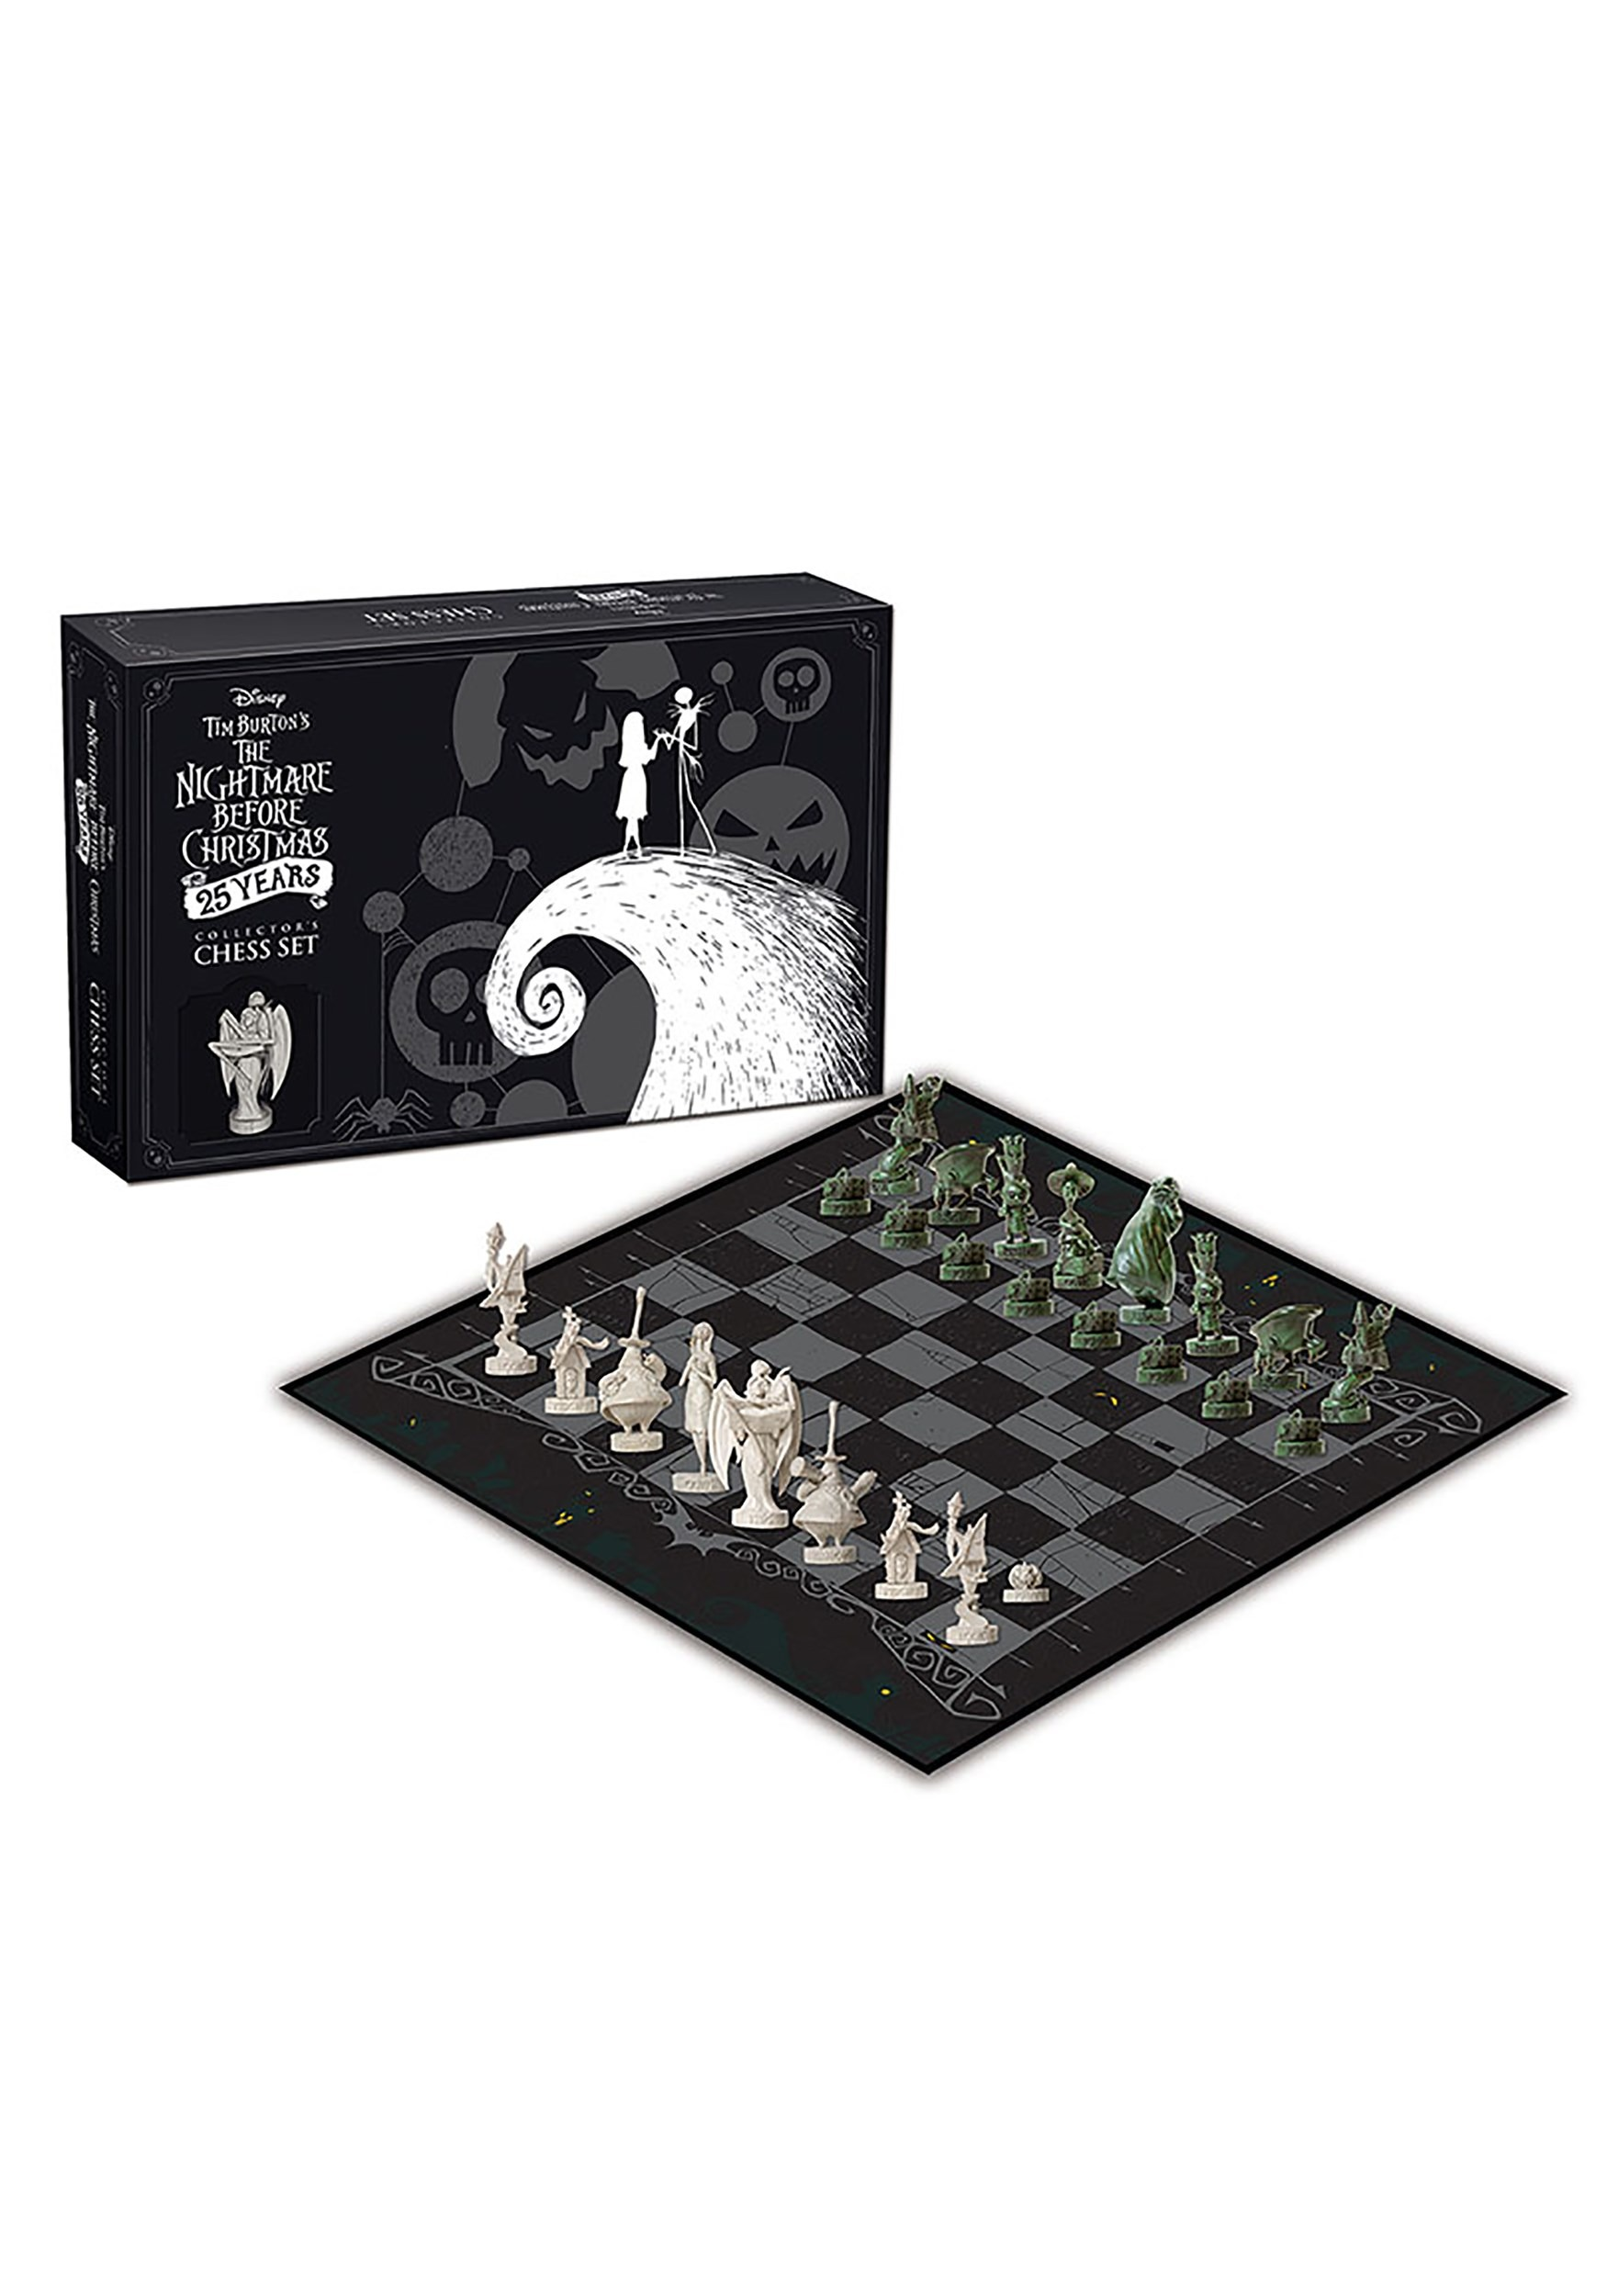 tim burtons the nightmare before christmas chess - Tim Burtons The Nightmare Before Christmas